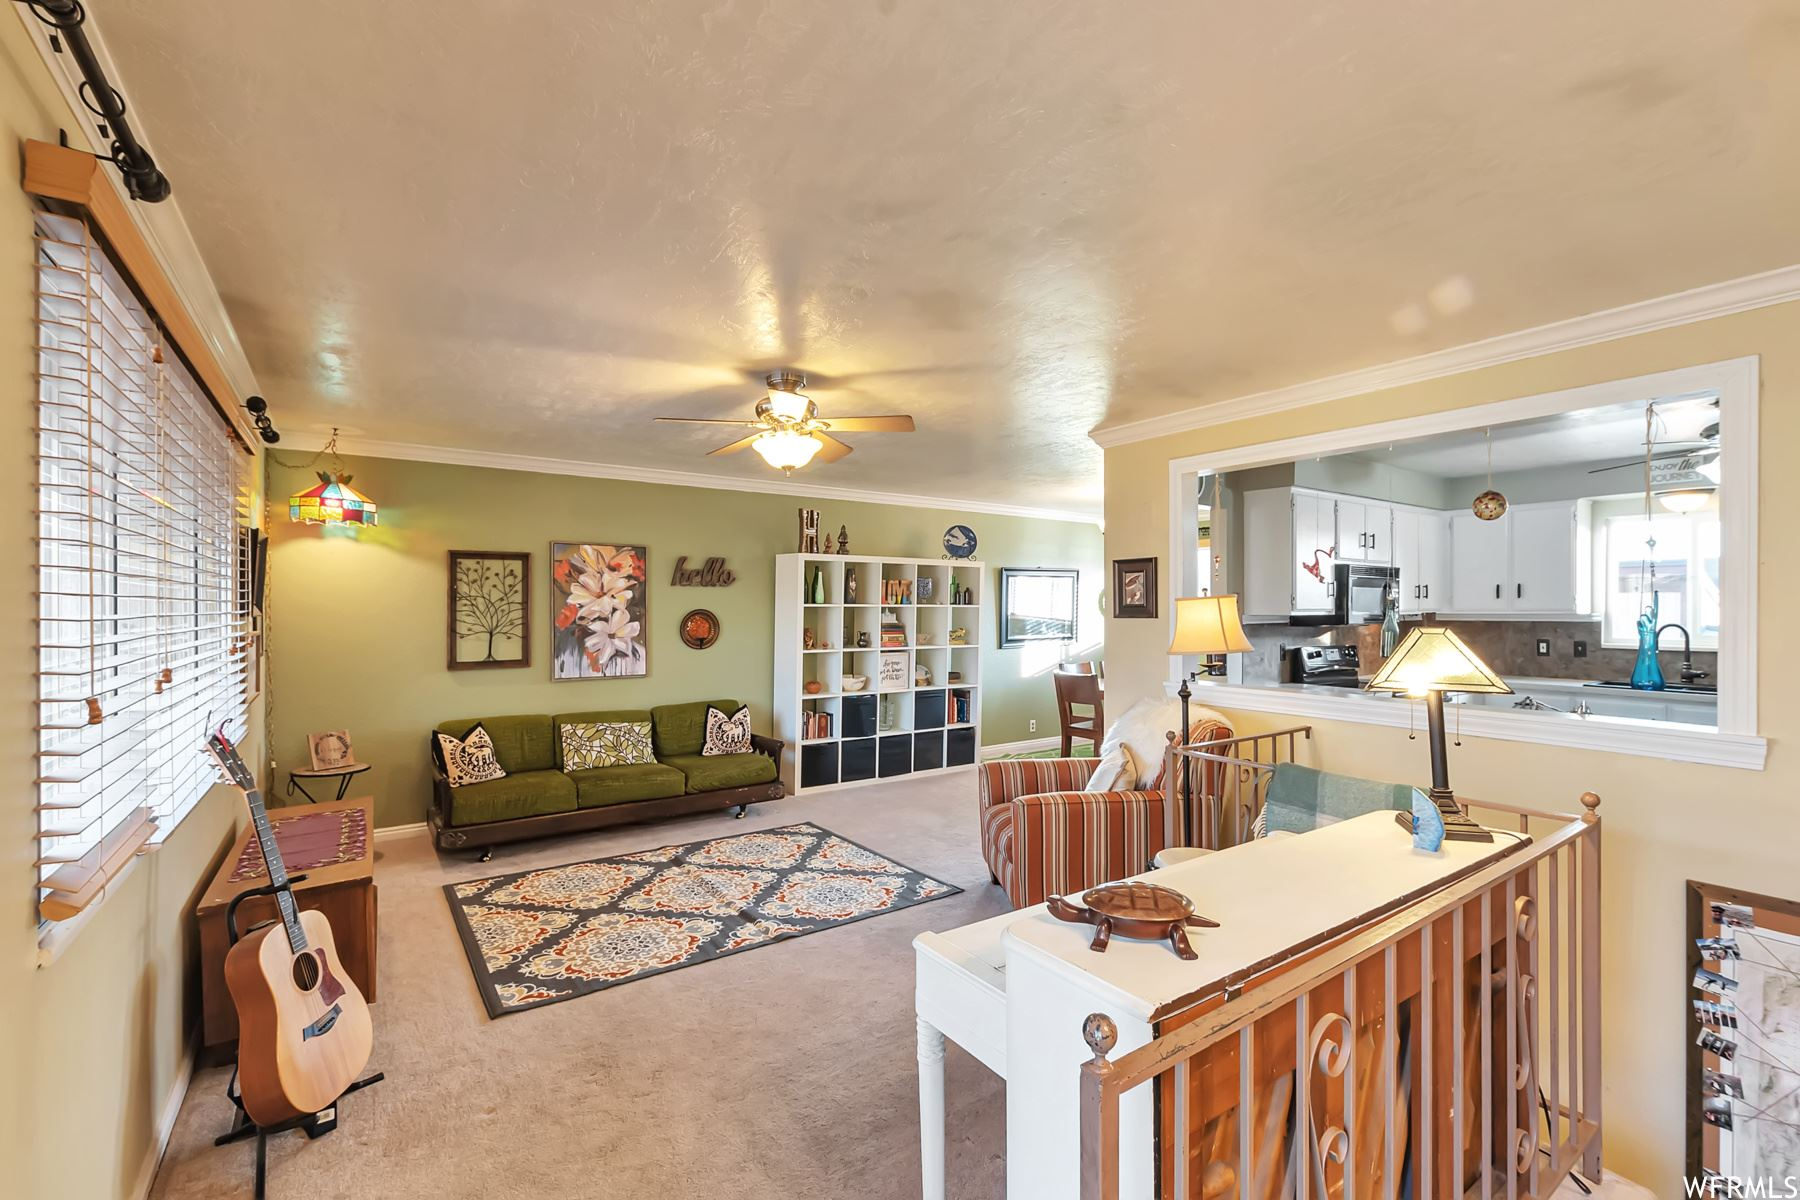 Photo of 333 E OAKWOOD N #333, Orem, UT 84057 (MLS # 1720137)